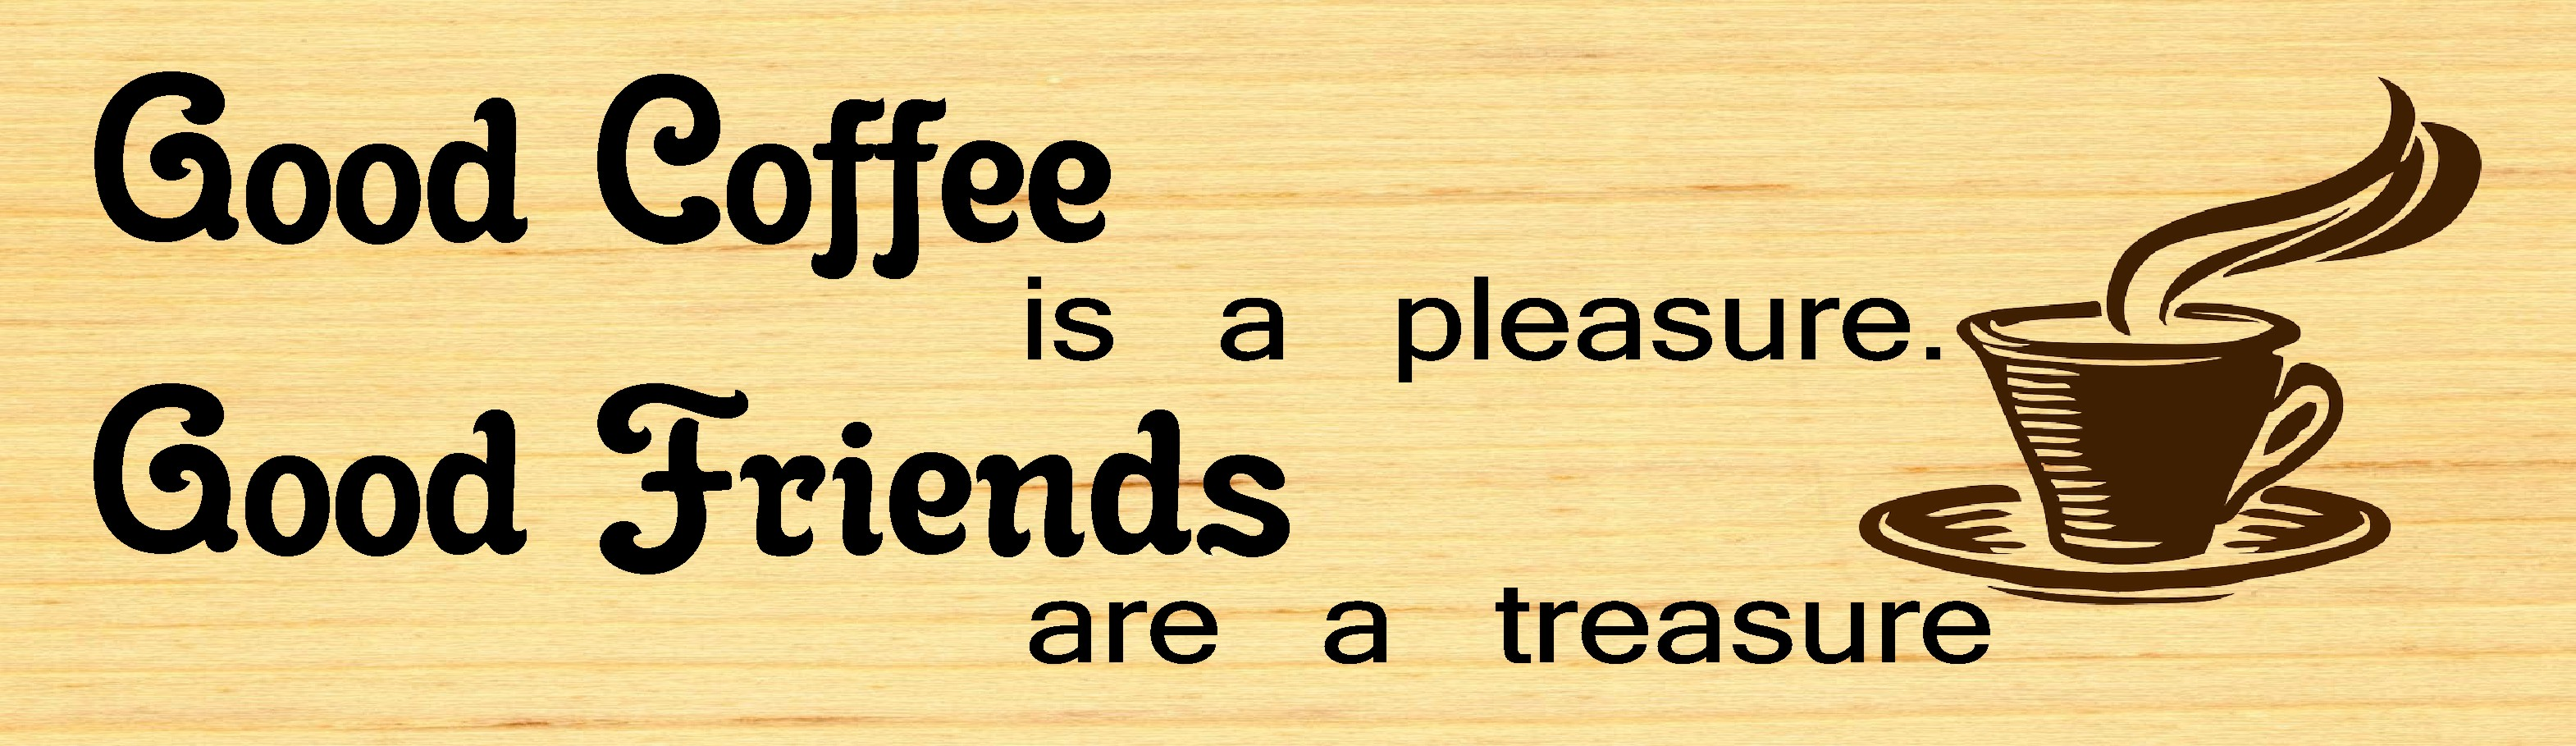 """GOOD COFFEE IS A PLEASURE. GOOD FRIENDS ARE A TREASURE 10.5"""" X 3"""" WOODEN BLOCK SIGN"""